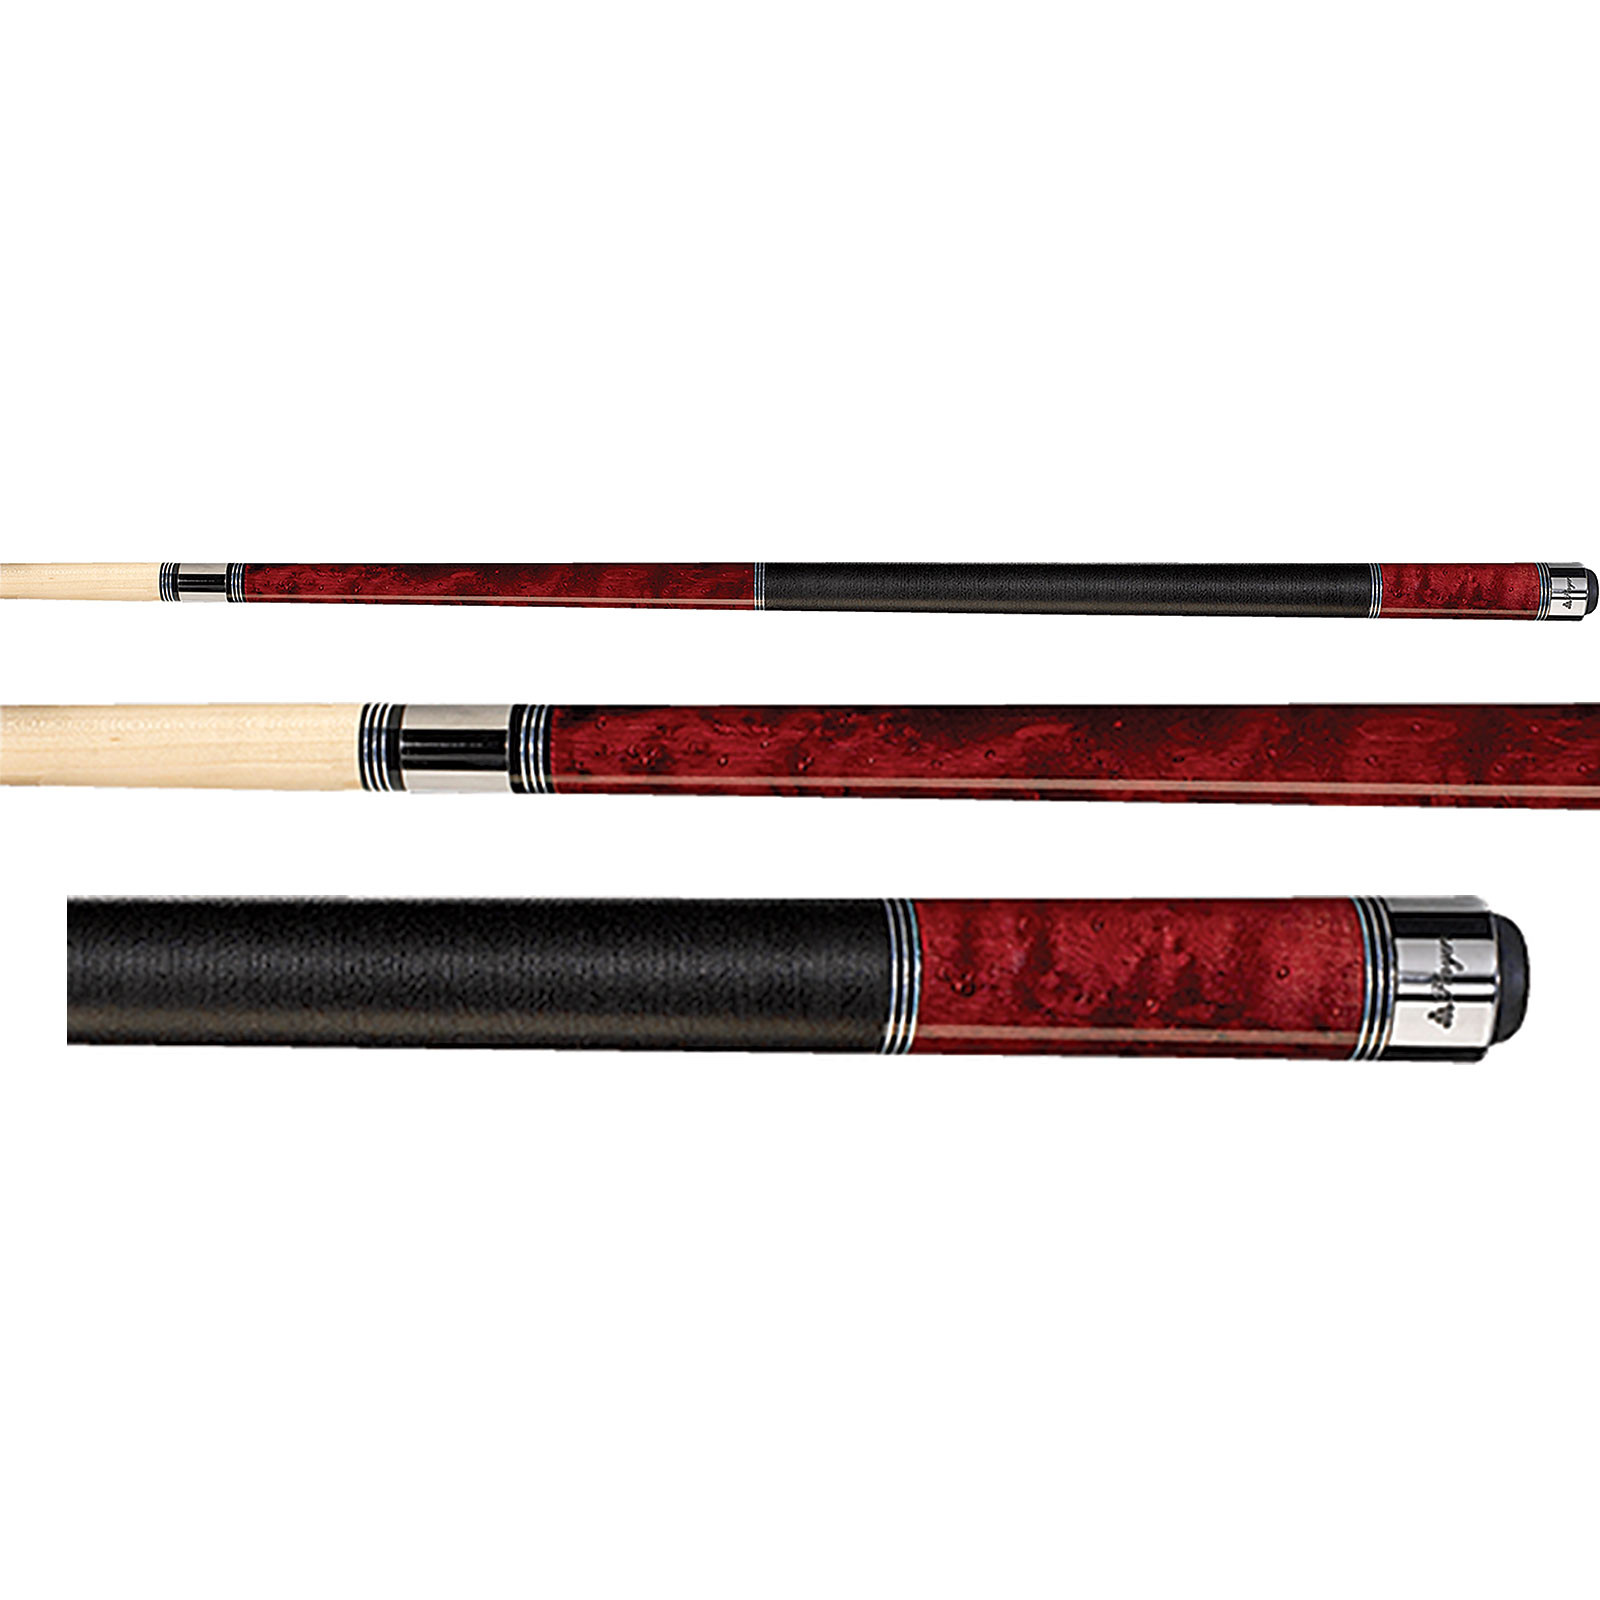 Players C-960 Crimson Red Pool Cue Stick